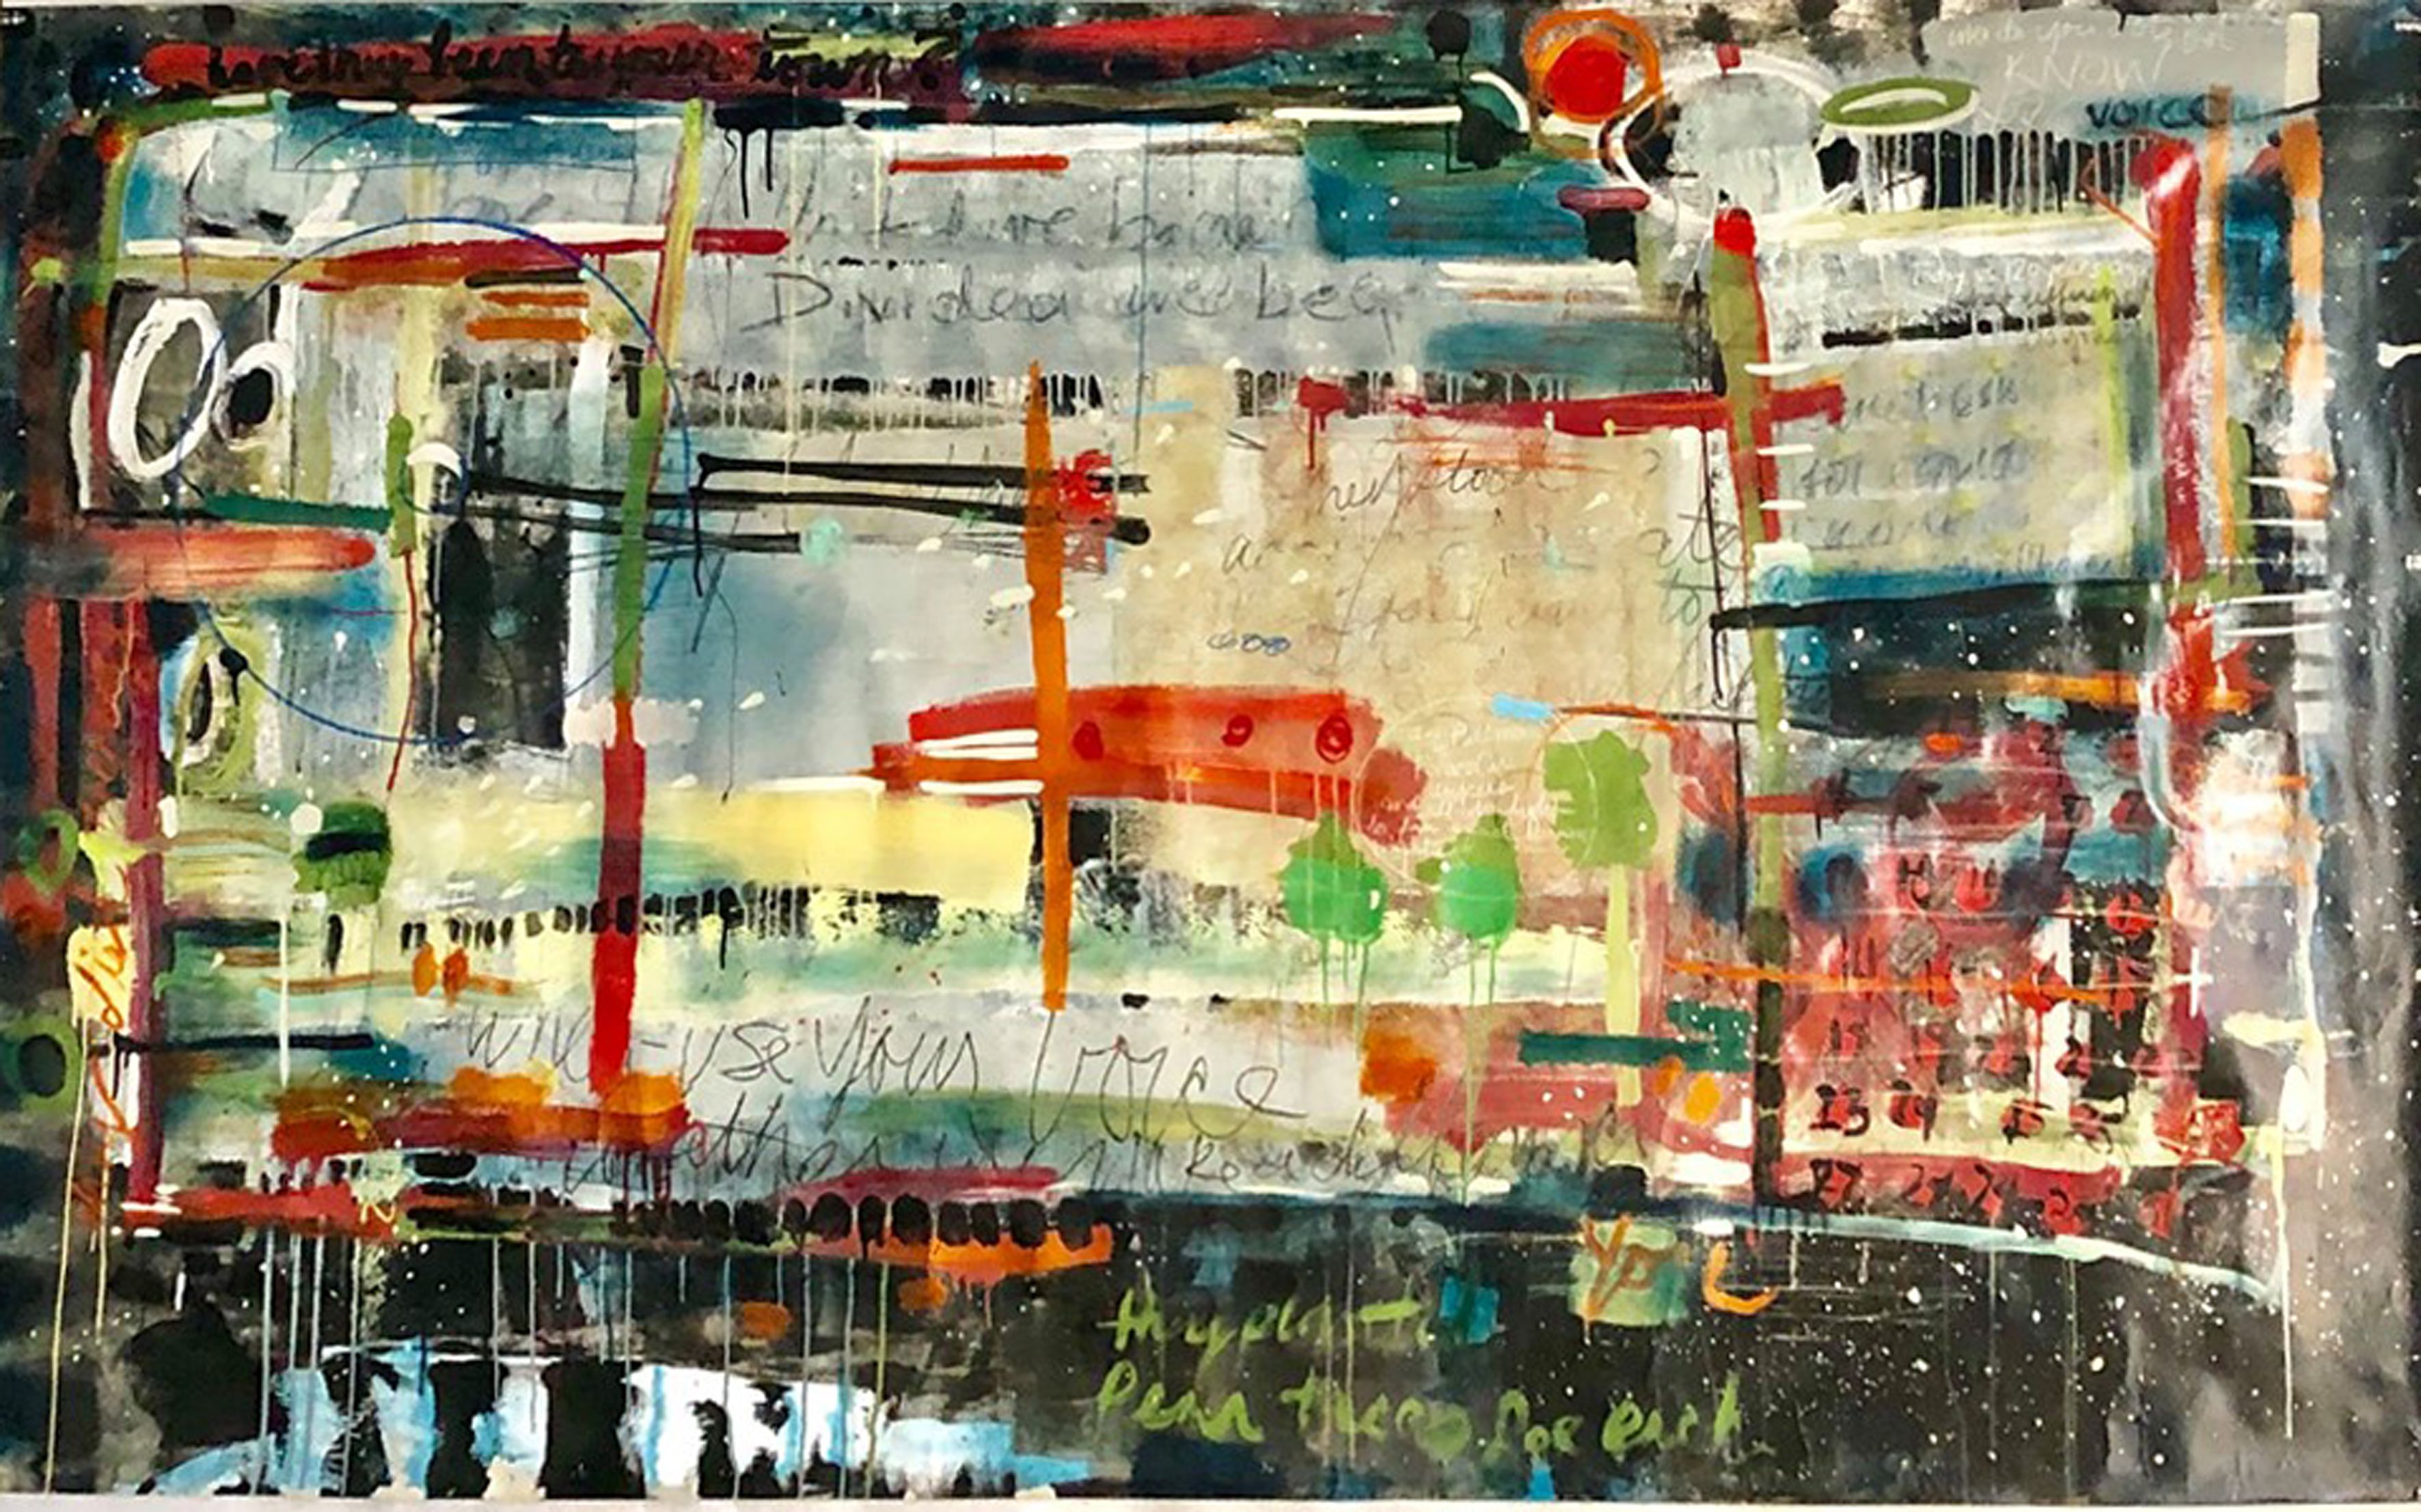 Factory Site Fence 5'x8' acrylic mixed media by Erica Jane Huntzinger.